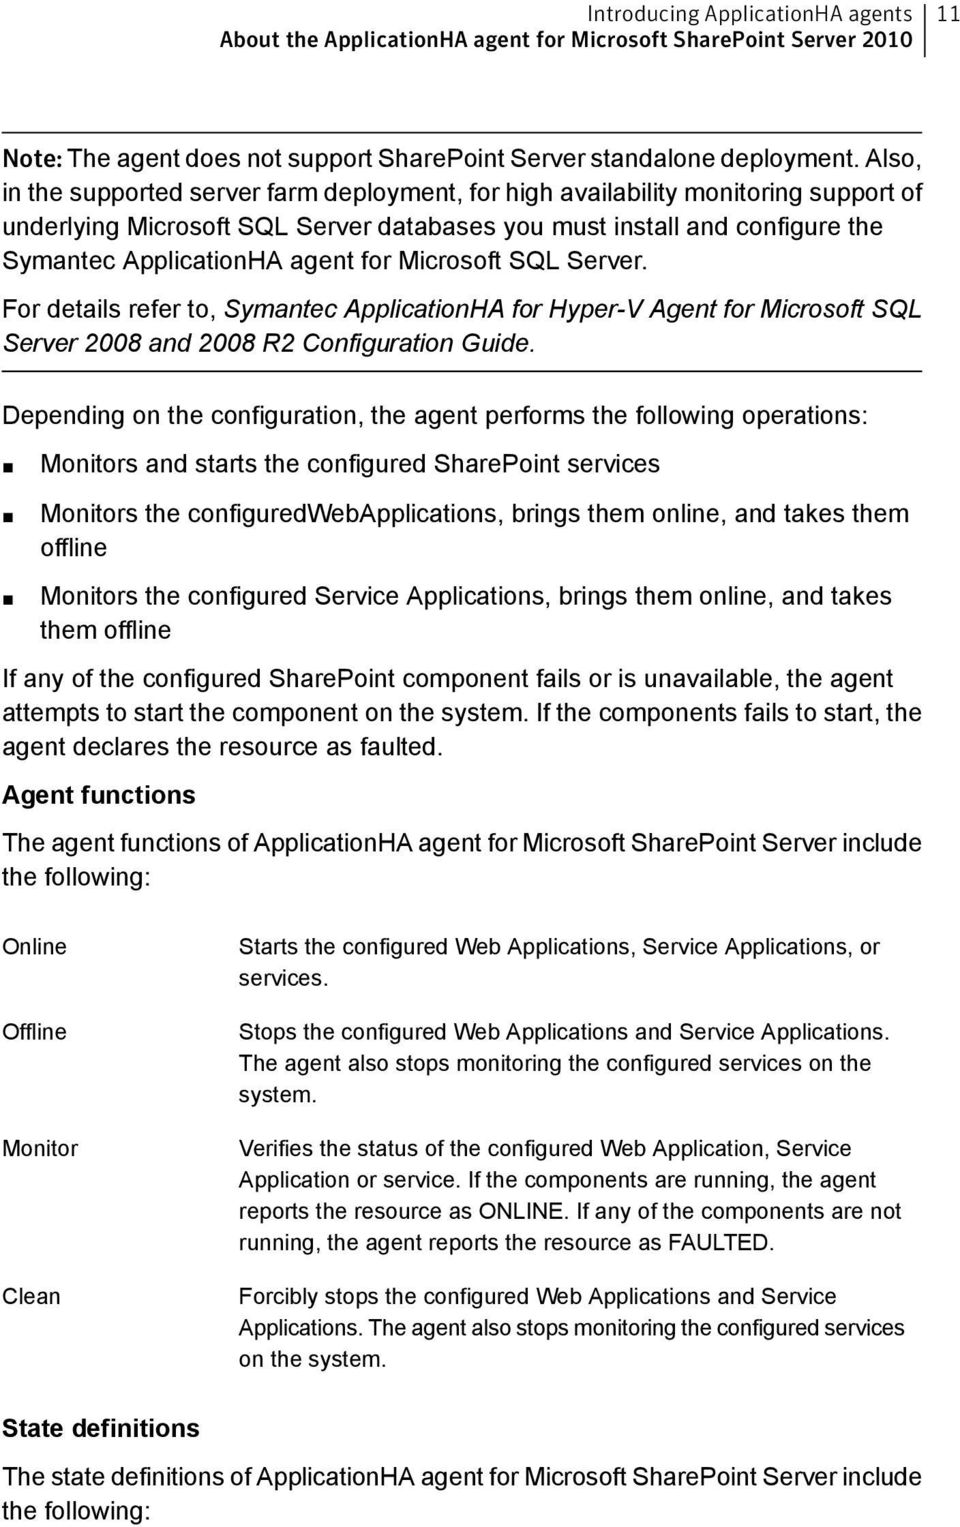 for Microsoft SQL Server. For details refer to, Symantec ApplicationHA for Hyper-V Agent for Microsoft SQL Server 2008 and 2008 R2 Configuration Guide.